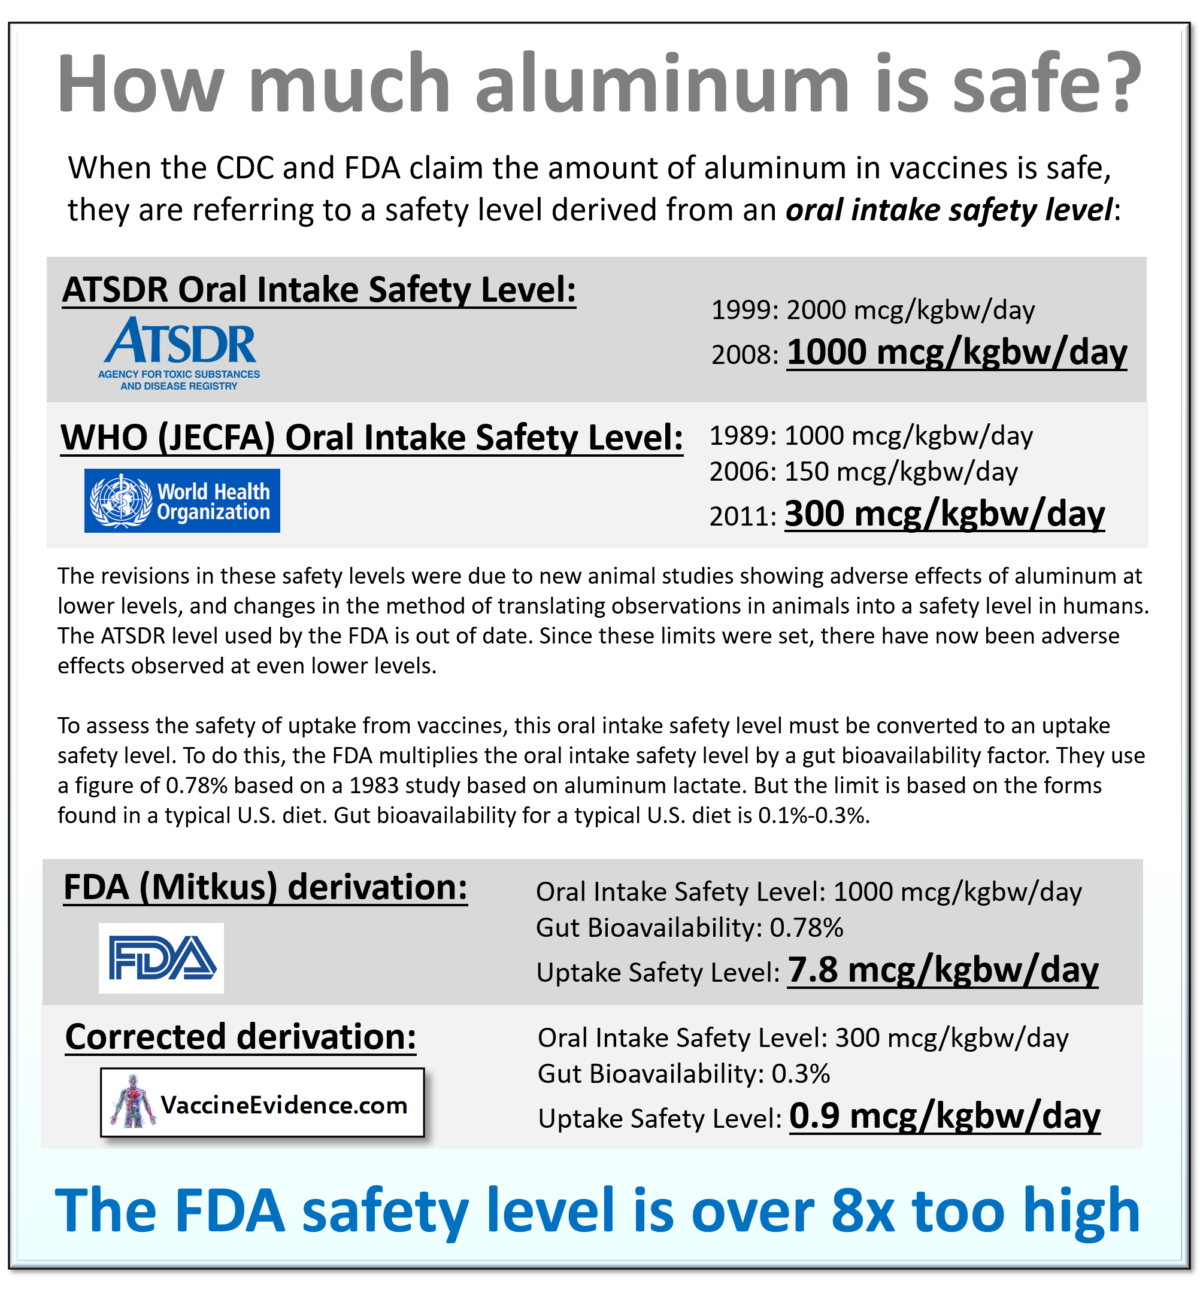 How much aluminum is safe?